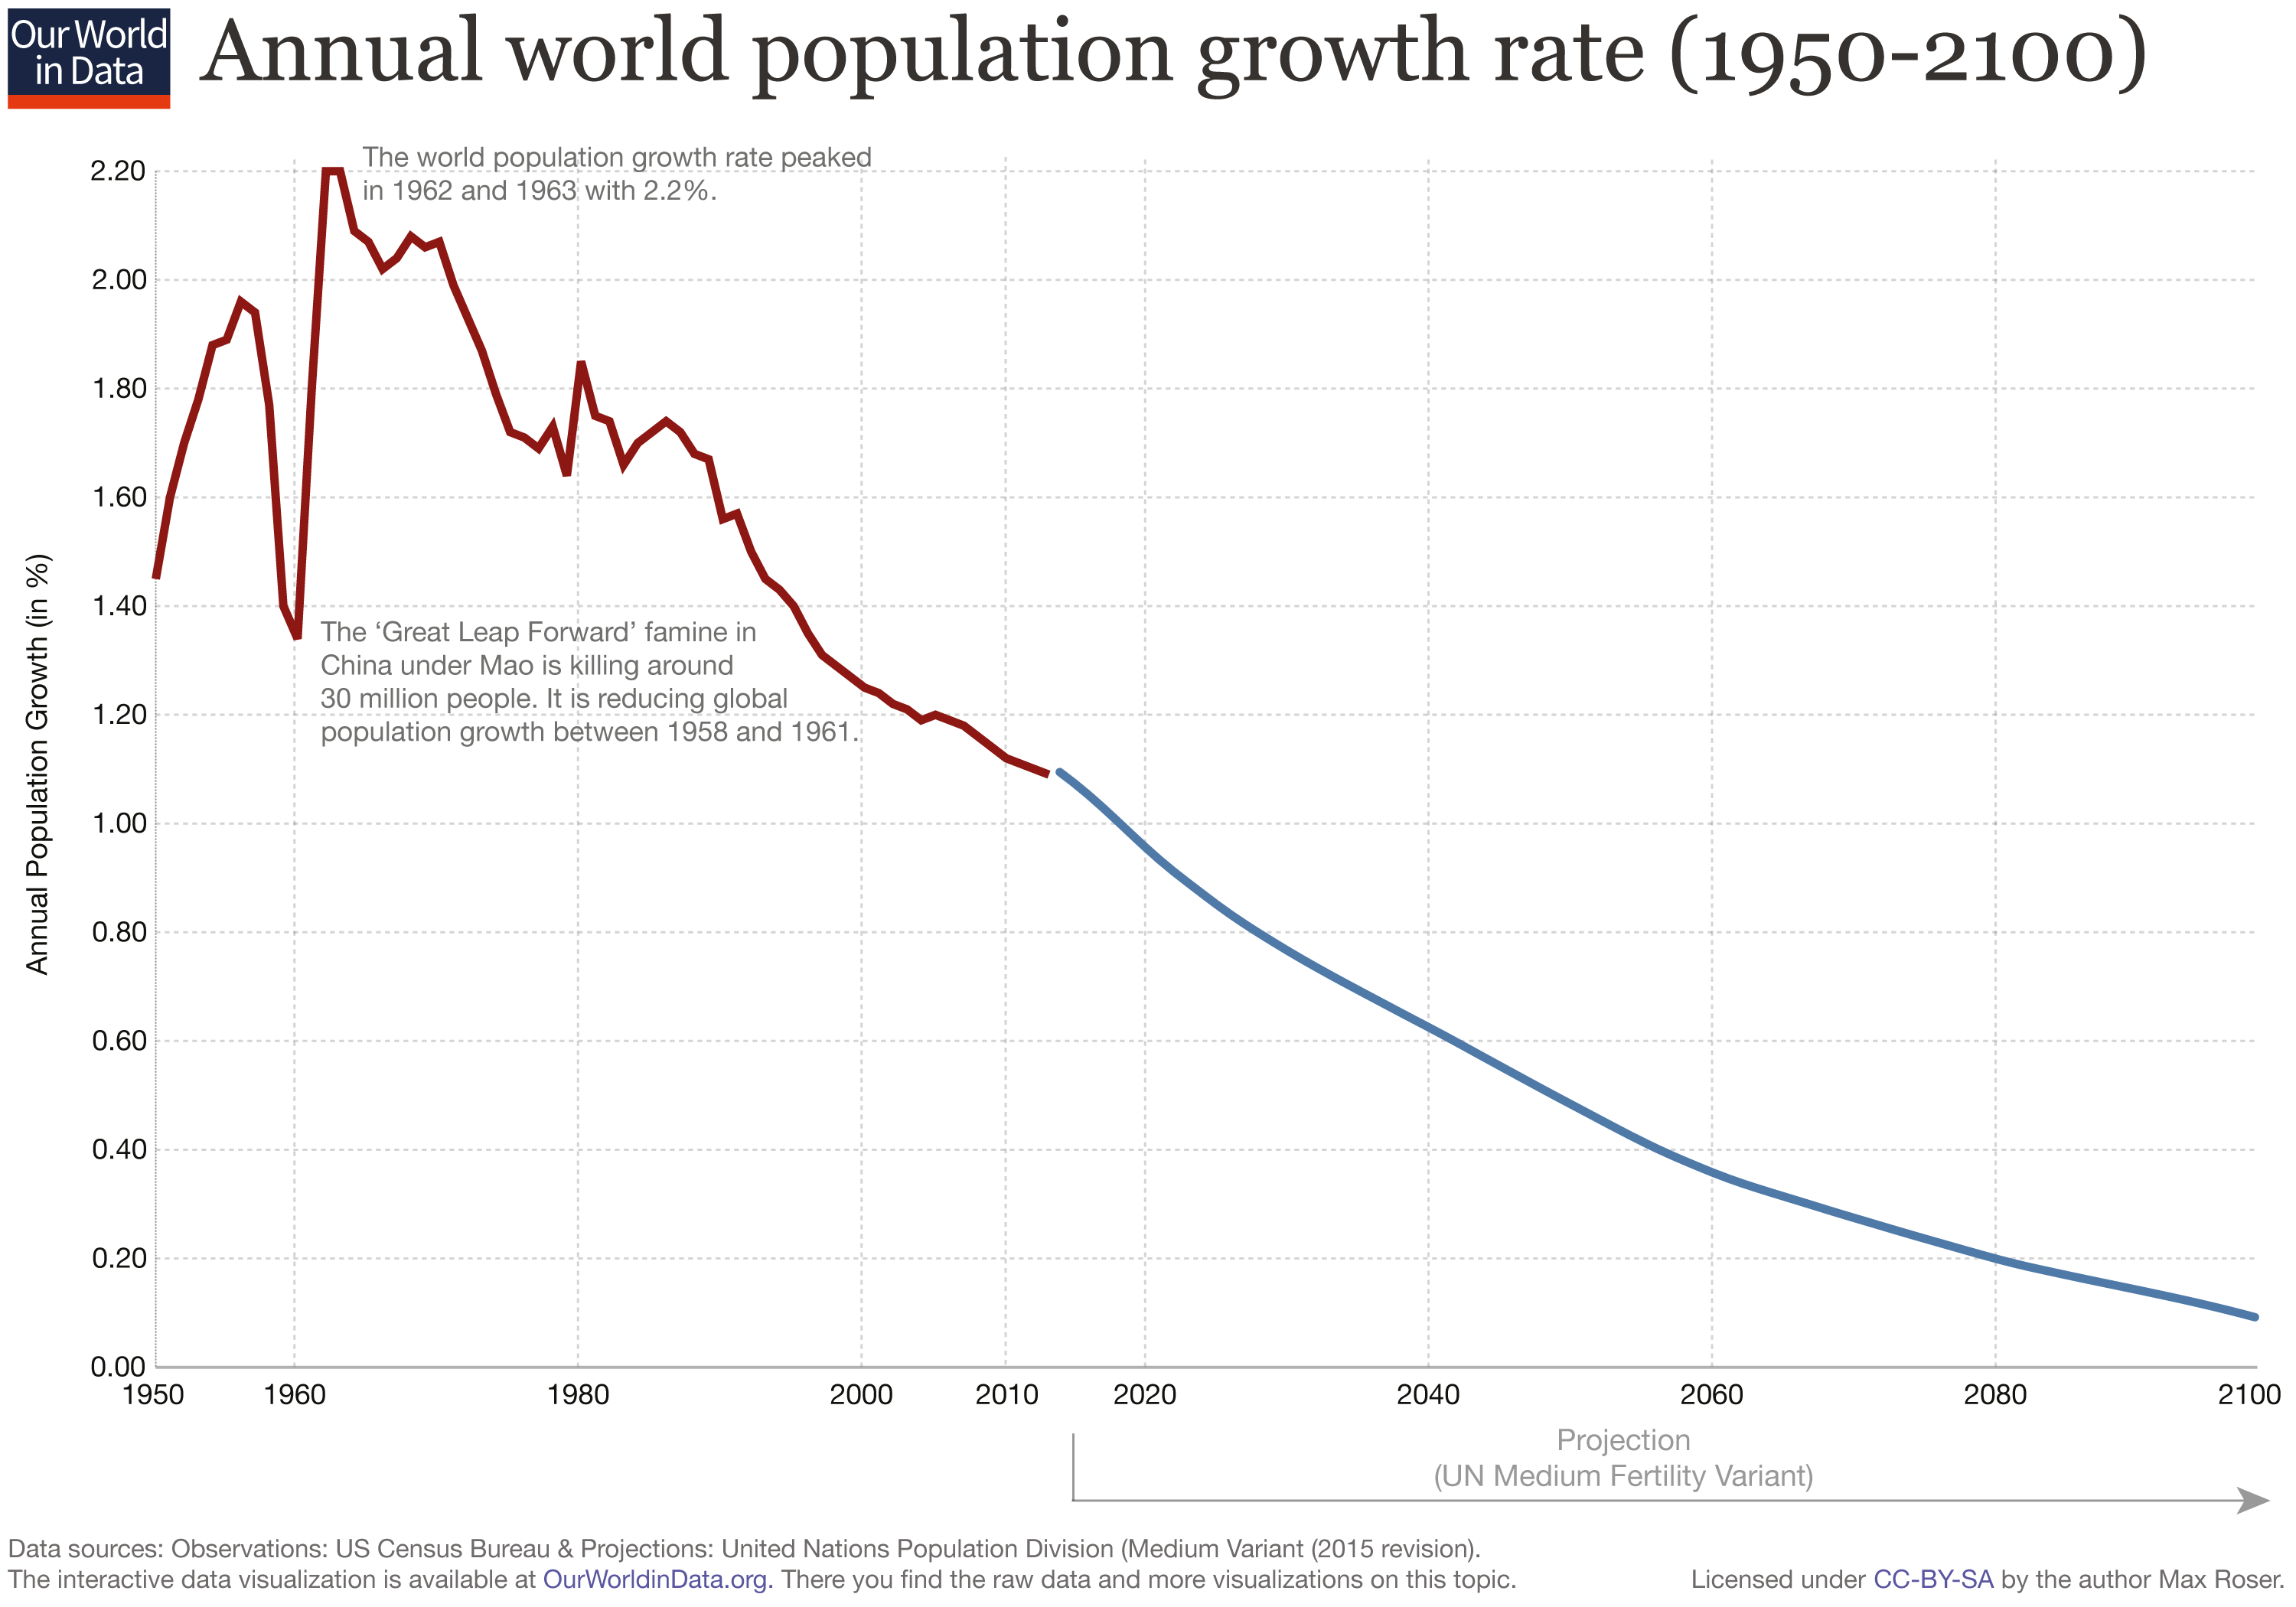 Updated-World-Population-Growth-Rate-Annual-1950-2100